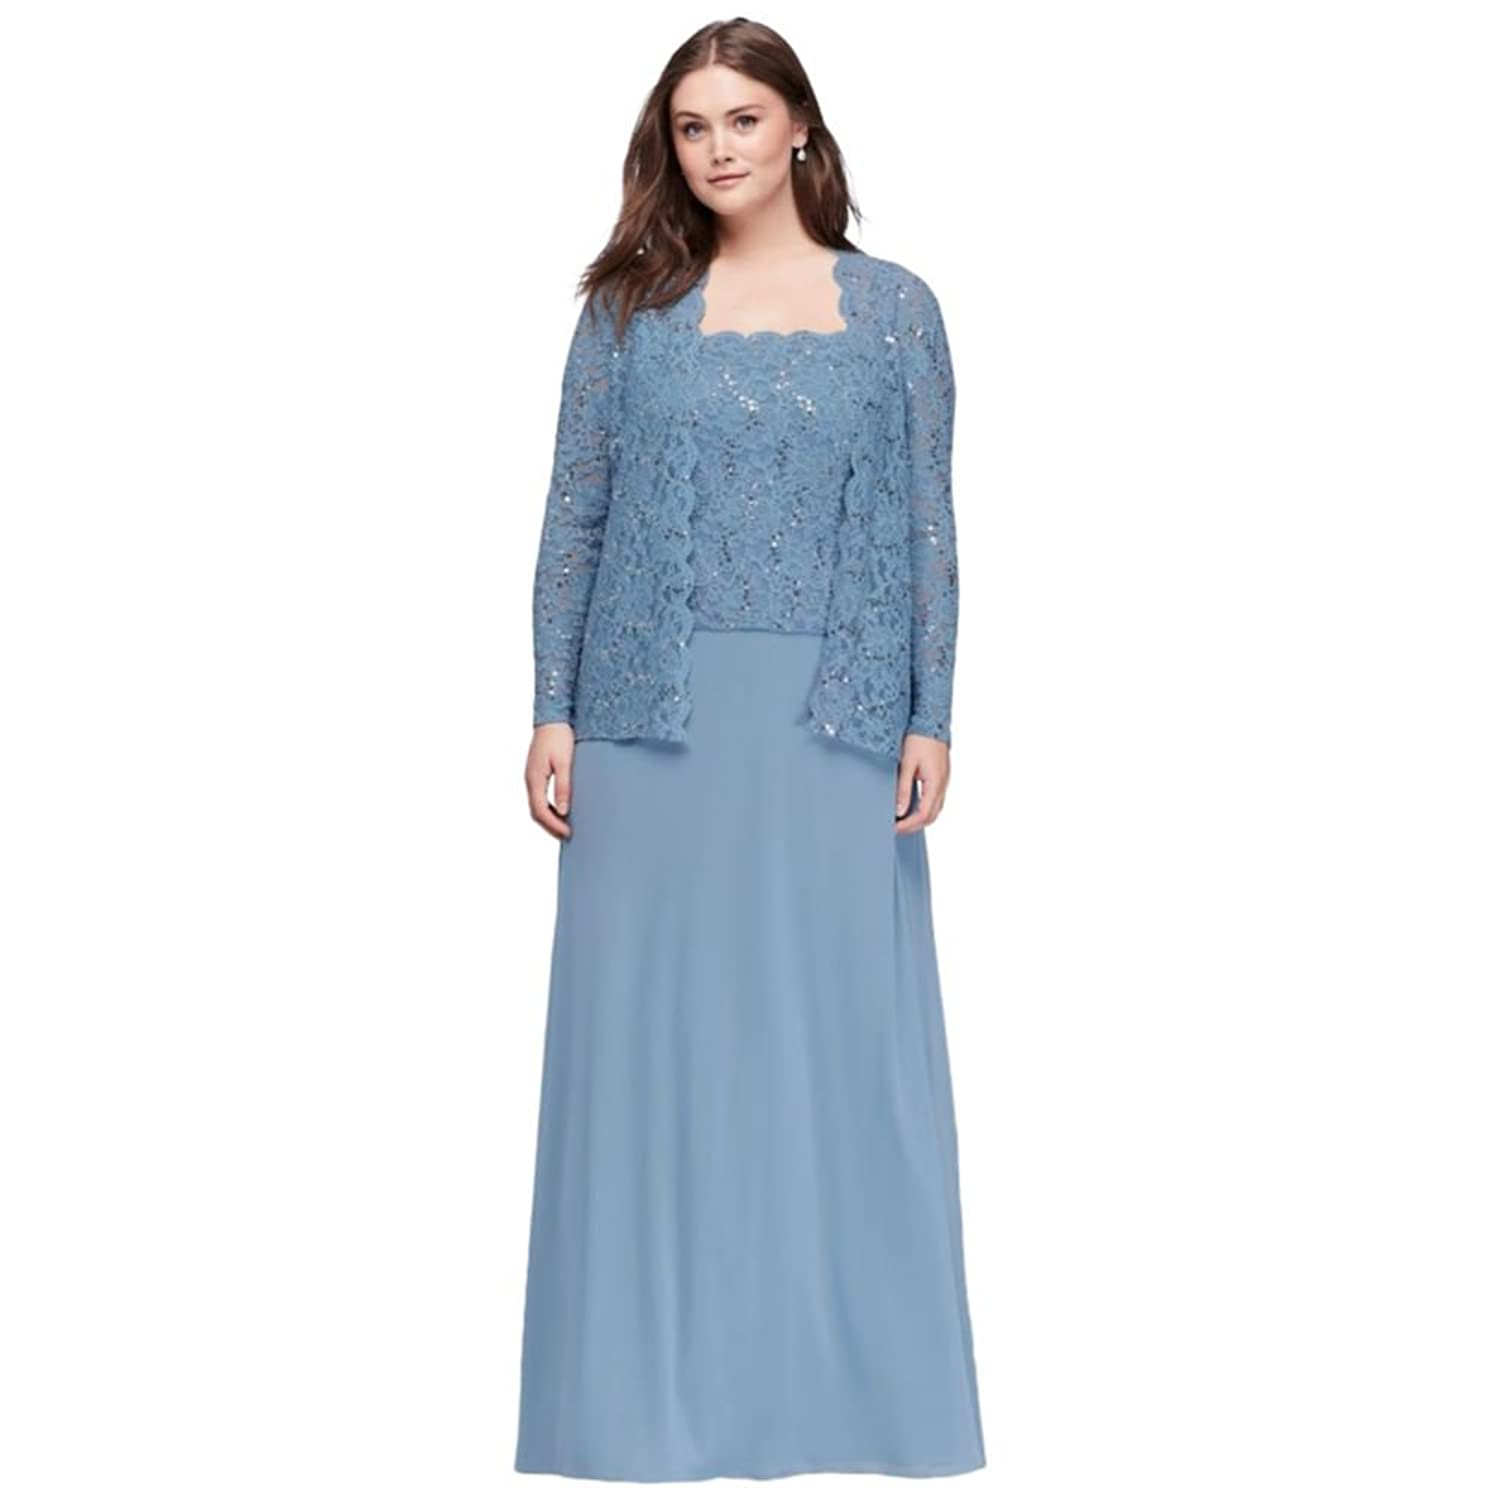 Scalloped Lace Two-Piece Plus Size Mother of Bride/Groom Dress Style ...